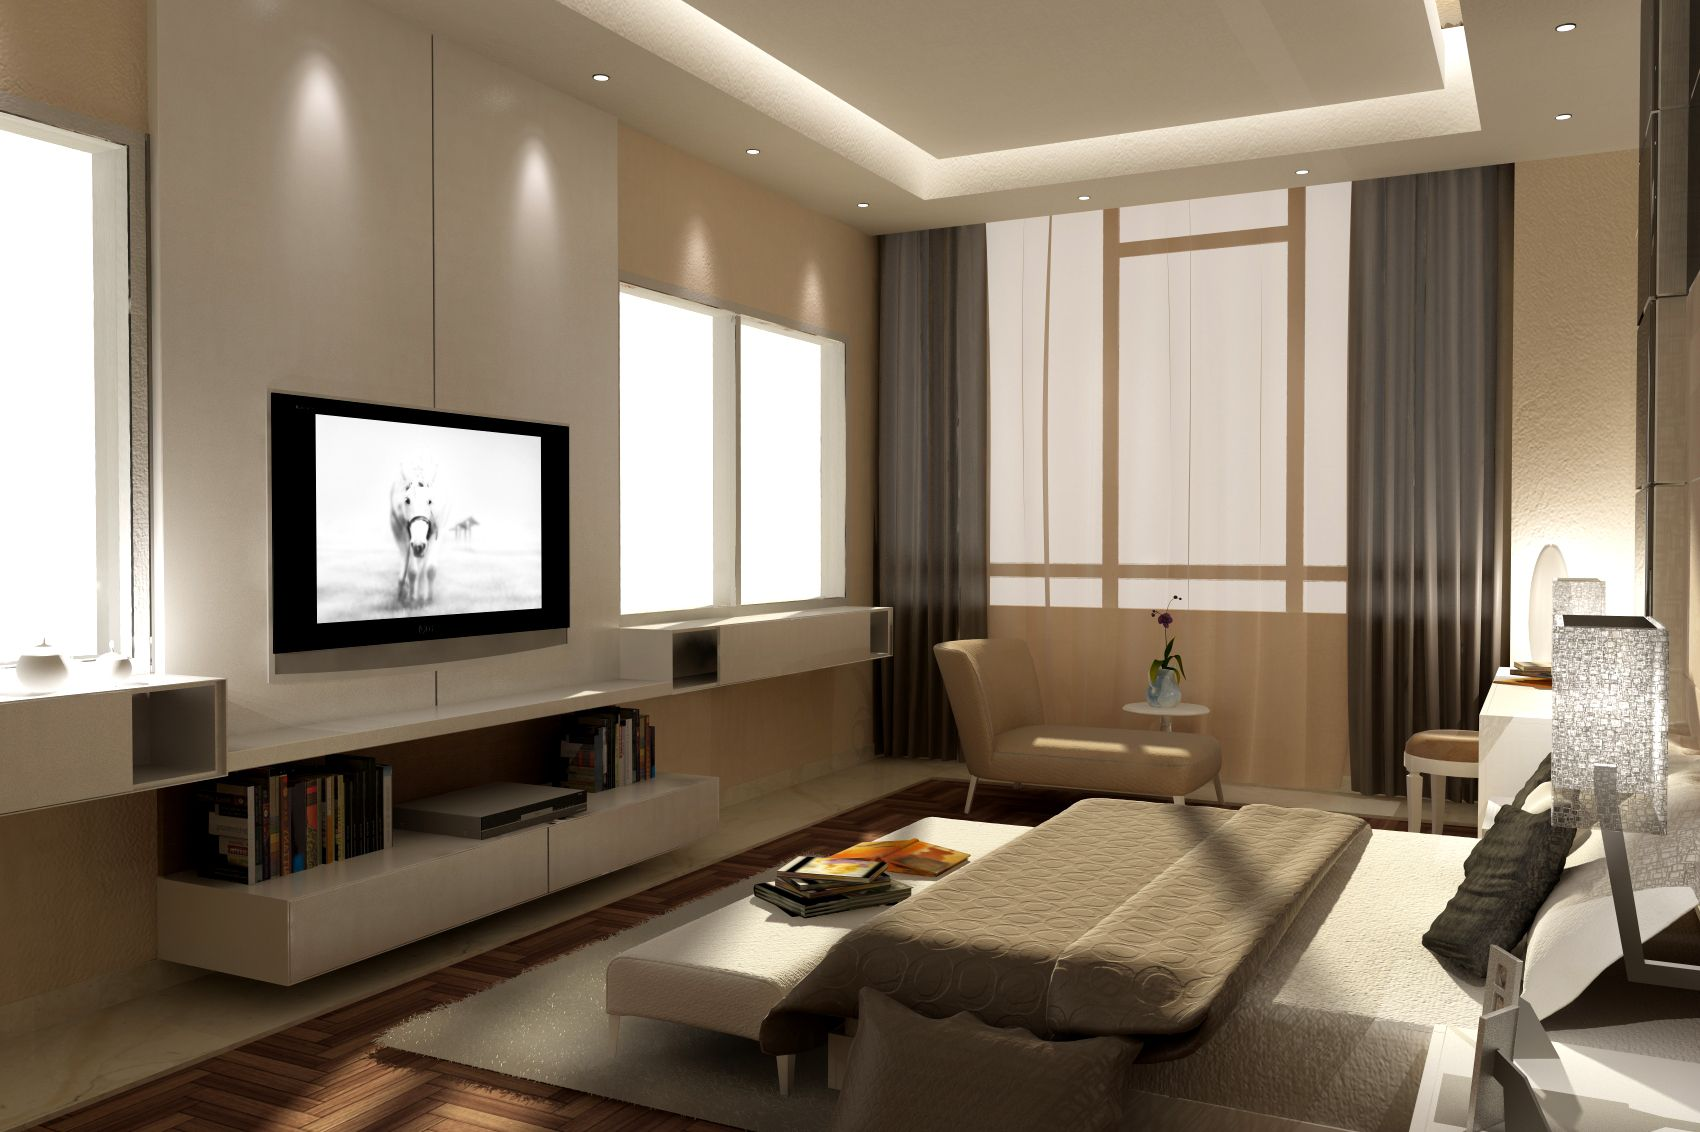 Bedroom modern bedroom interior design 3d max 3d for 3d interior design online